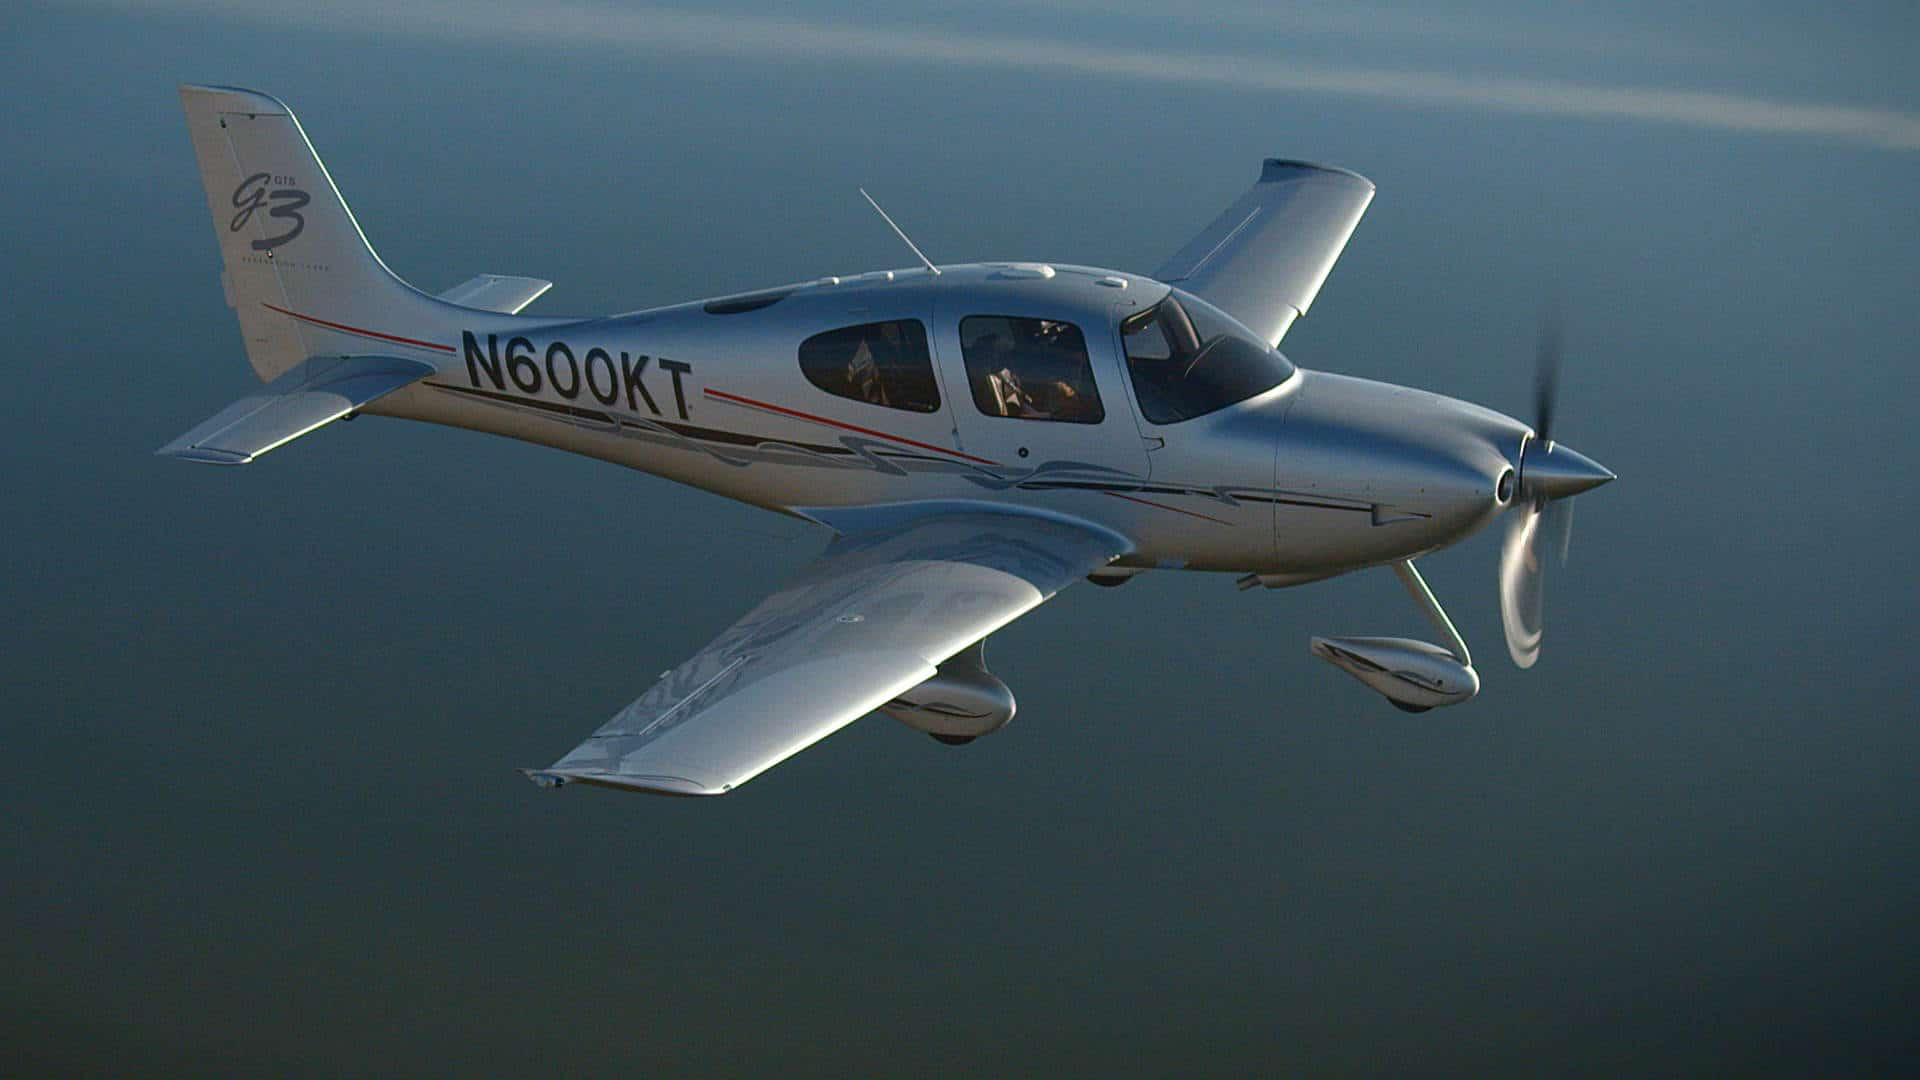 A Cirrus SR22 GTS in flight.